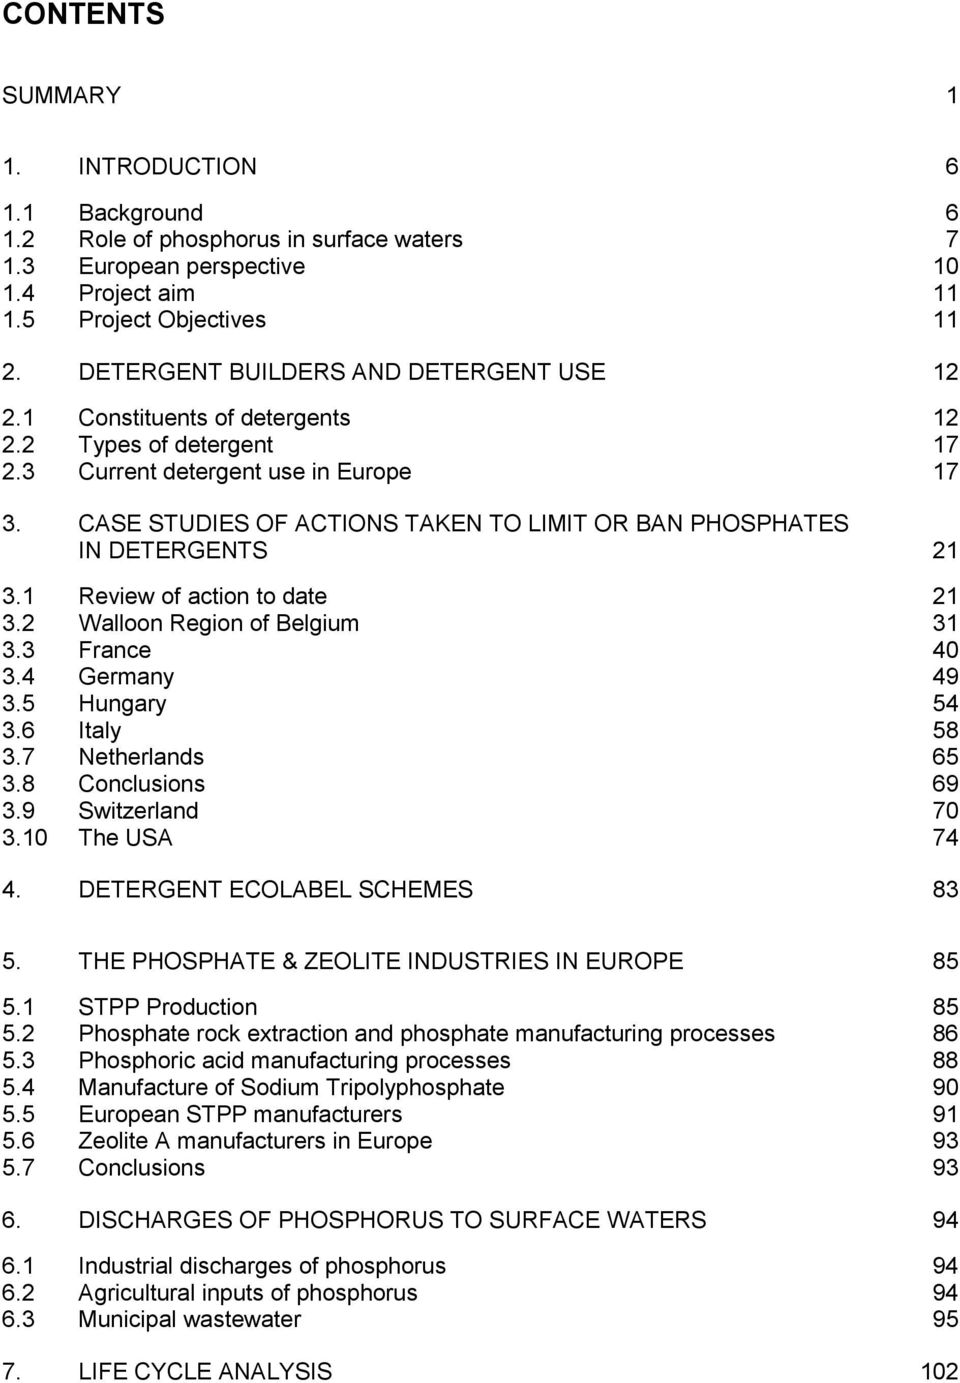 Eu Environment Directorate Phosphates And Alternative Detergent Manganese Zeolite Super 1 Kg Case Studies Of Actions Taken To Limit Or Ban In Detergents 21 31 Review